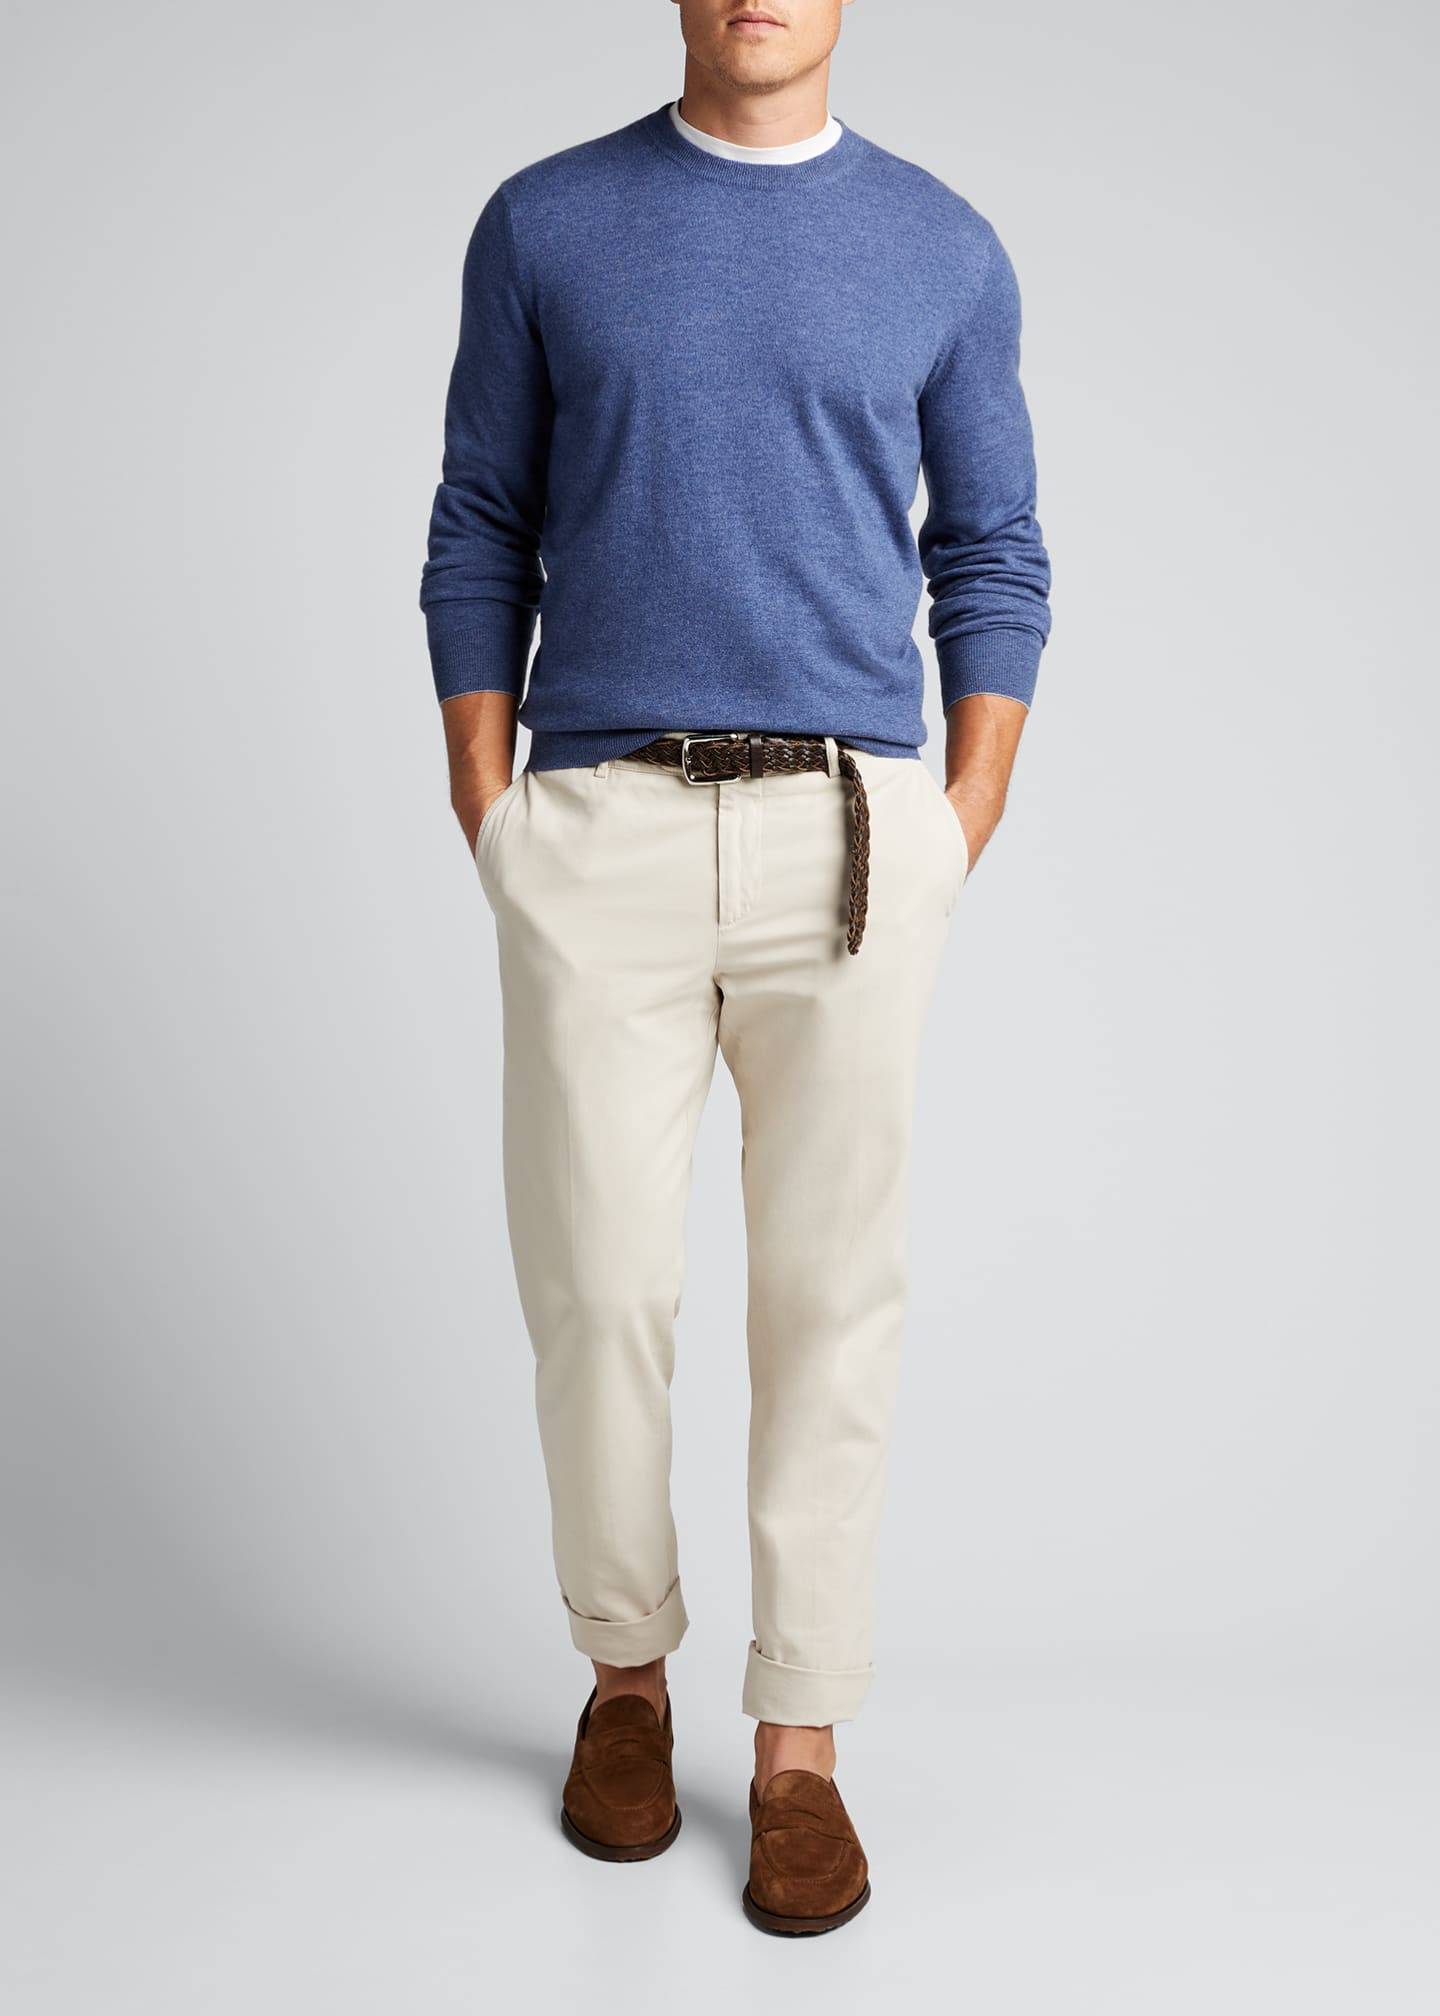 Image 1 of 5: Men's 2-Ply Cashmere Crew Sweater